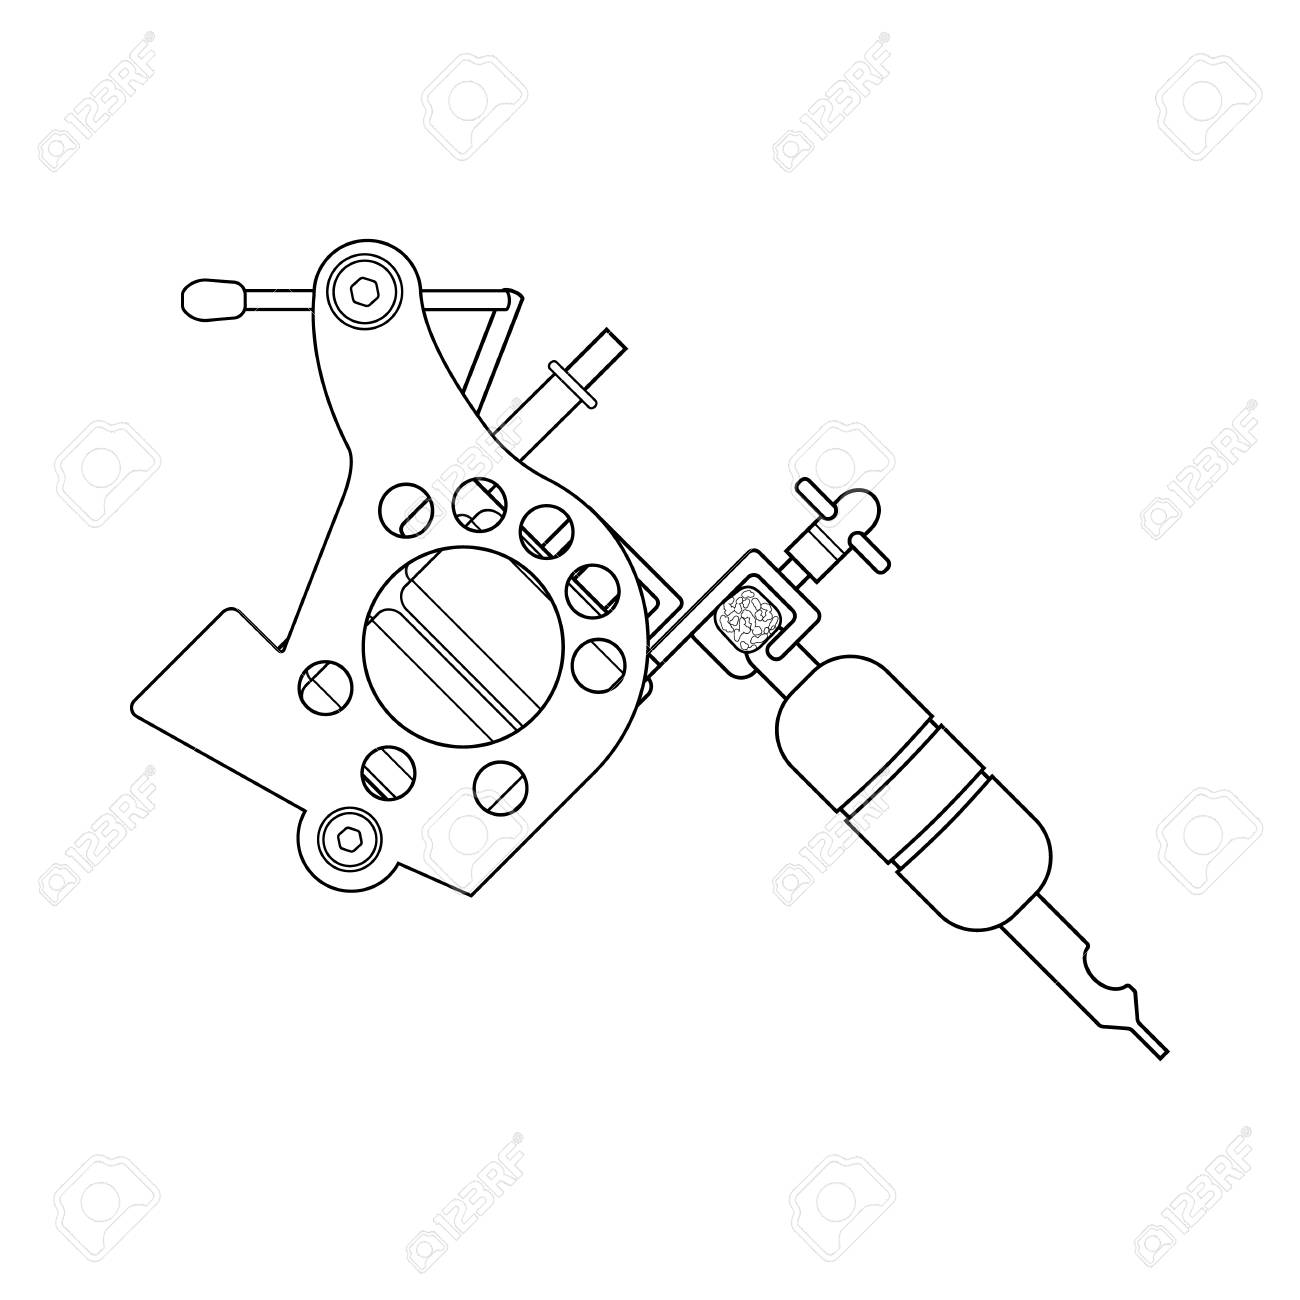 Dessin Lineaire De Machine A Tatouer Illustration De La Ligne Mince Symbole De Contour De Pistolet De Tatouage Dessin De Contour Isole Vector Clip Art Libres De Droits Vecteurs Et Illustration